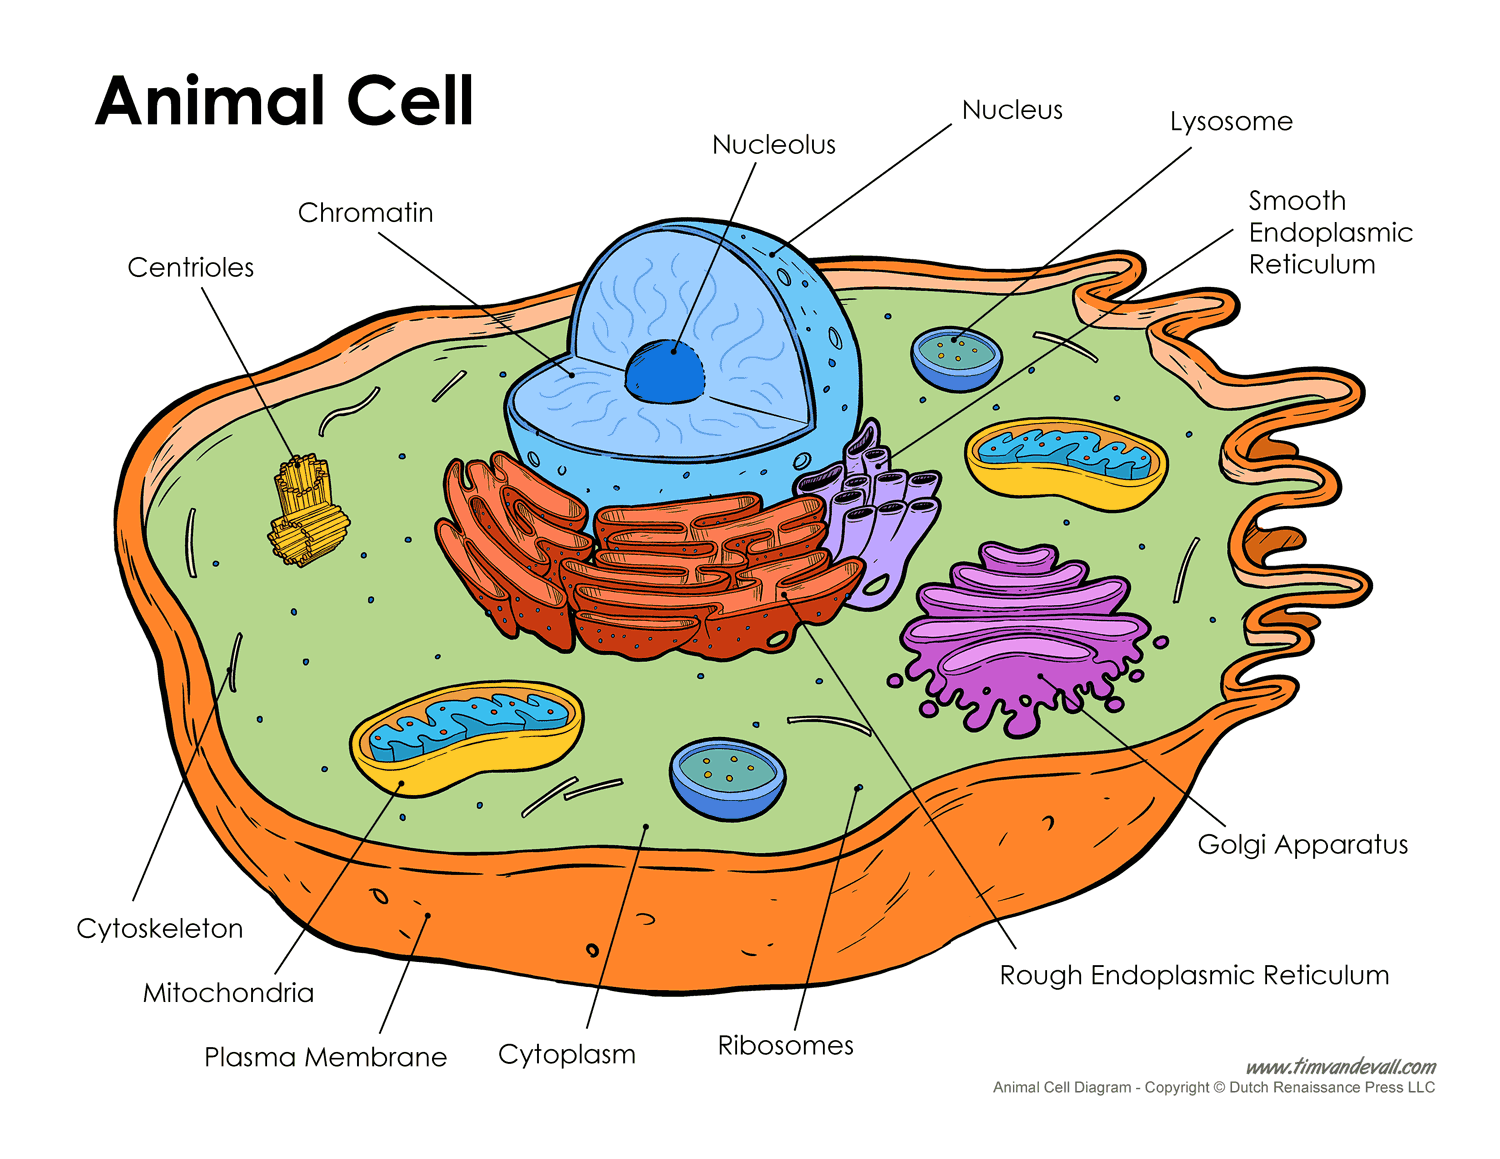 hight resolution of once i got the idea of making an animal cell i began to look around online for reference 2d sample cells that i could potentially transform into a